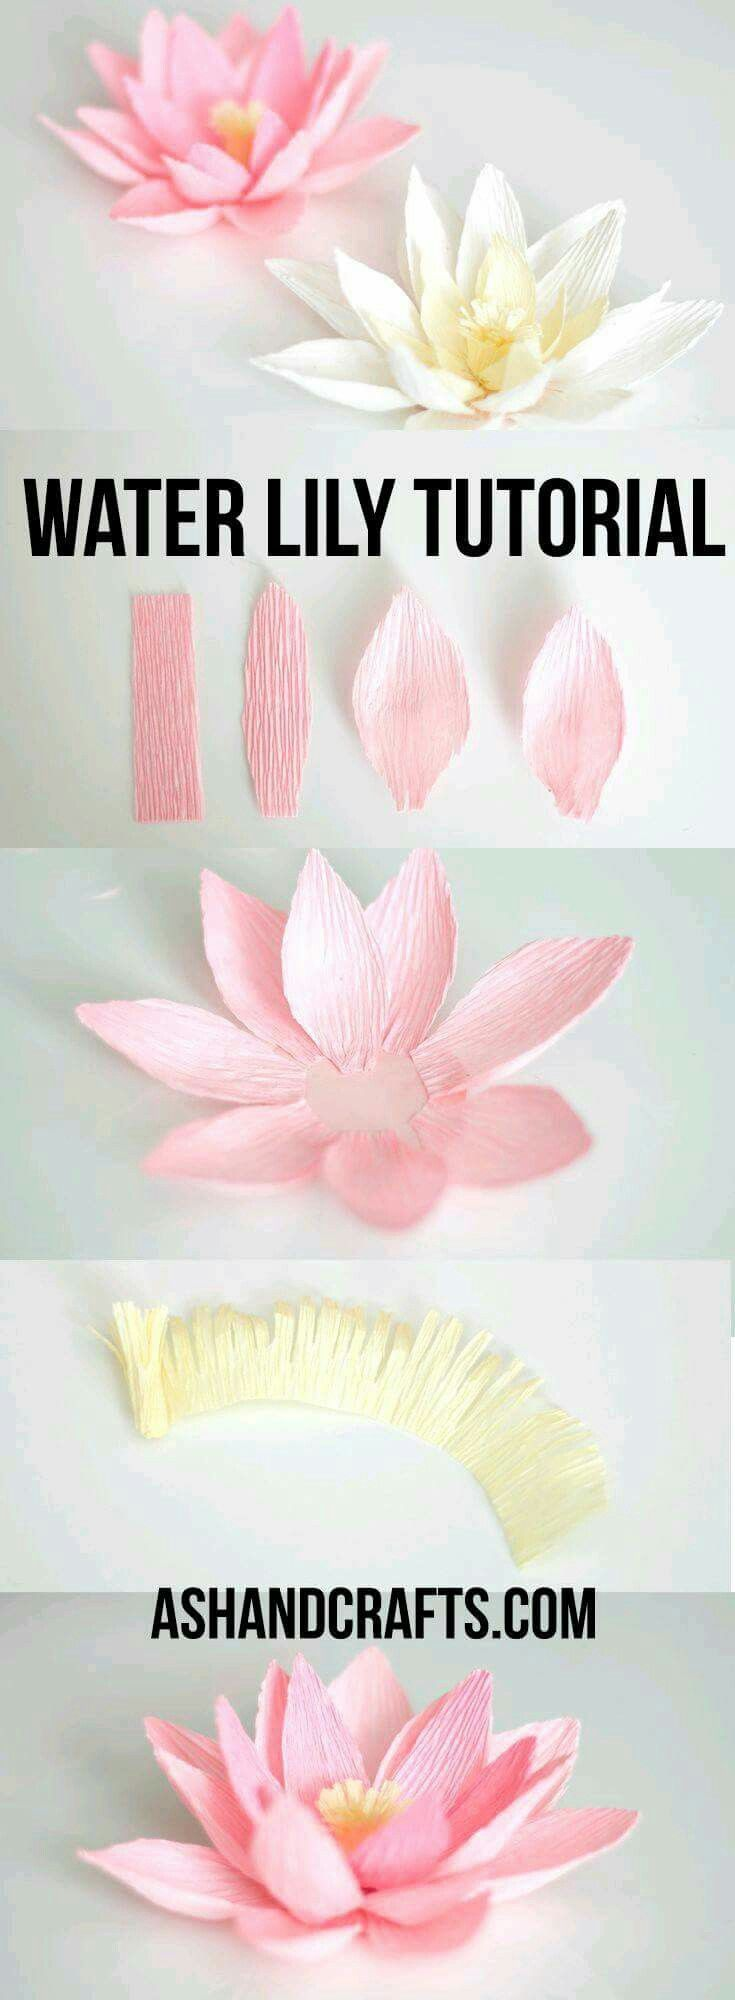 Pin By Melissa Rico On Flowers Pinterest Flowers Craft And Flower